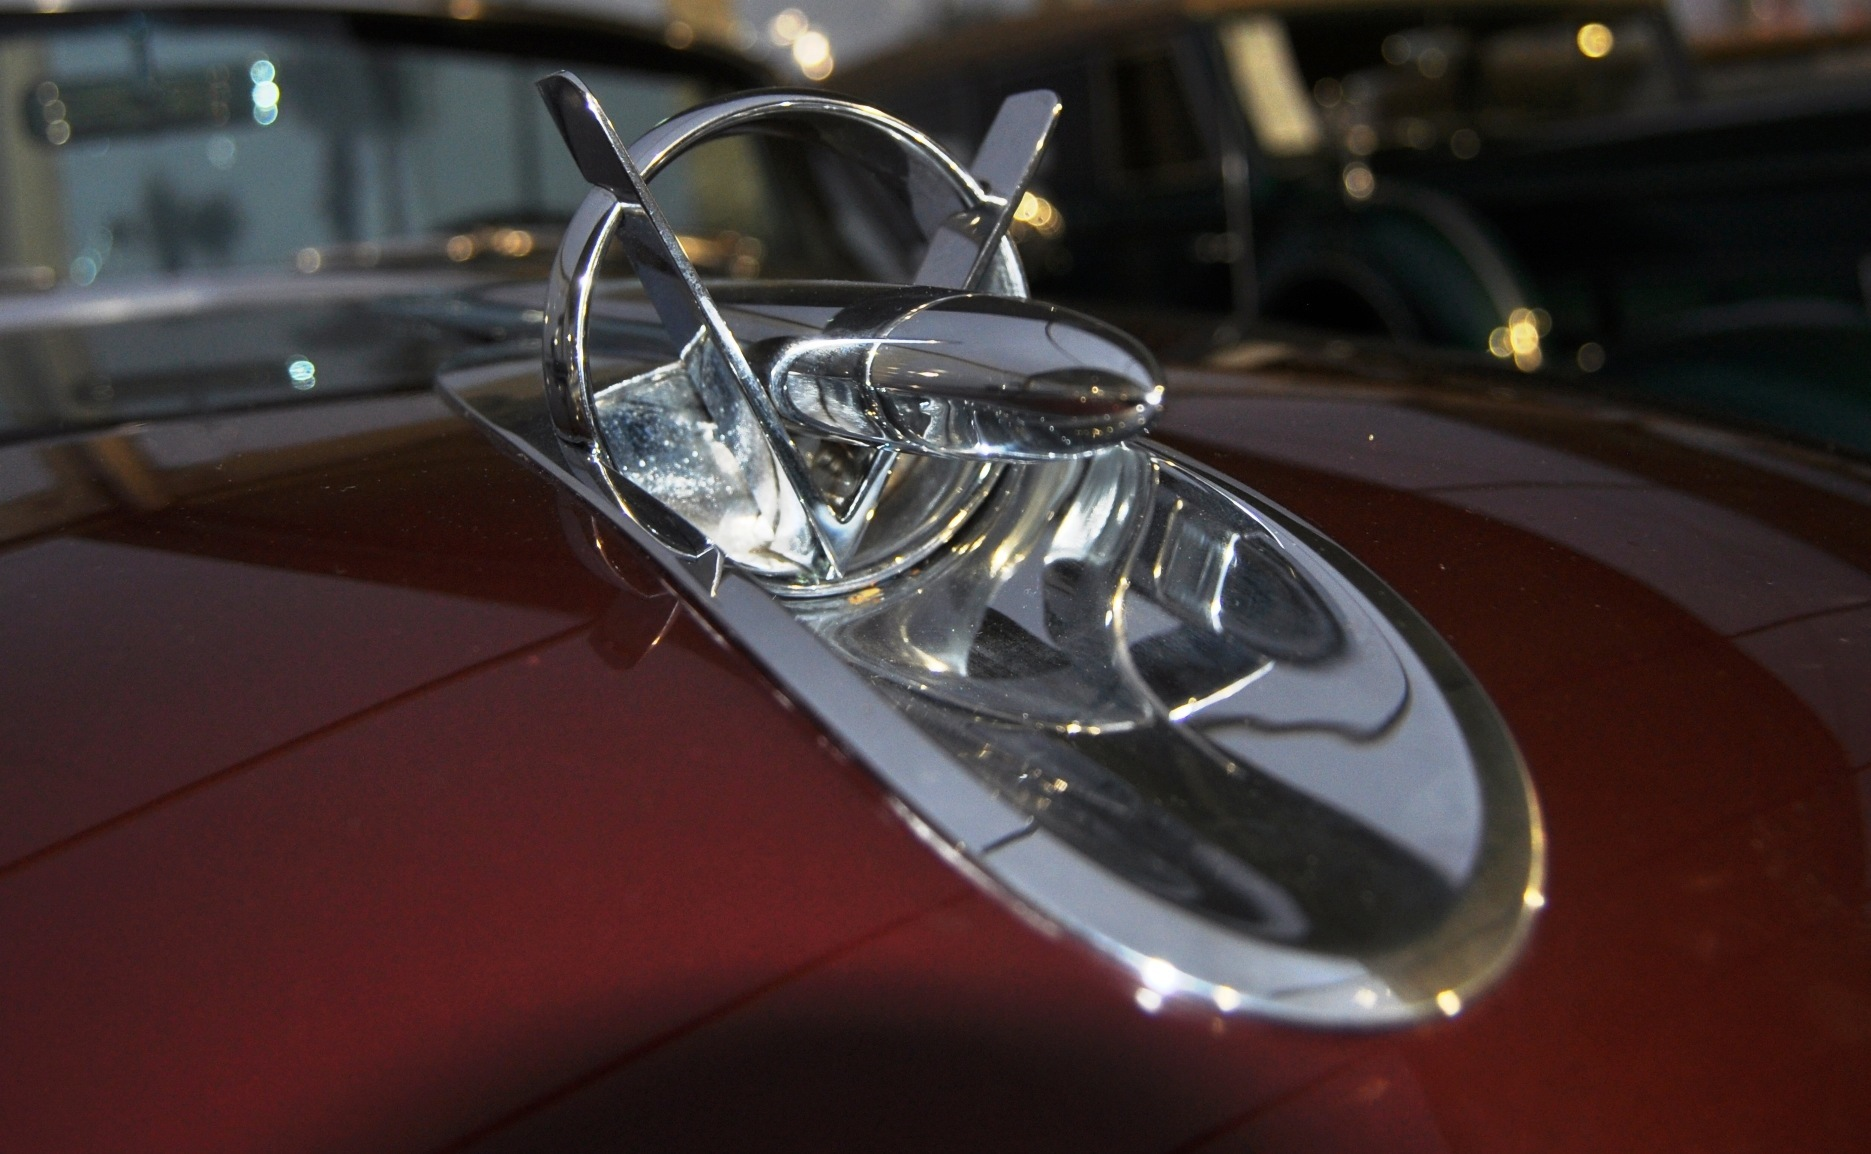 Coolest Vintage Hood Ornaments -- RM Auctions Amelia Island 2014 -- Pierce-Arrow, Cadillac, Stutz, Chrysler, Ford, Aston-Martin, Bentley and More 16